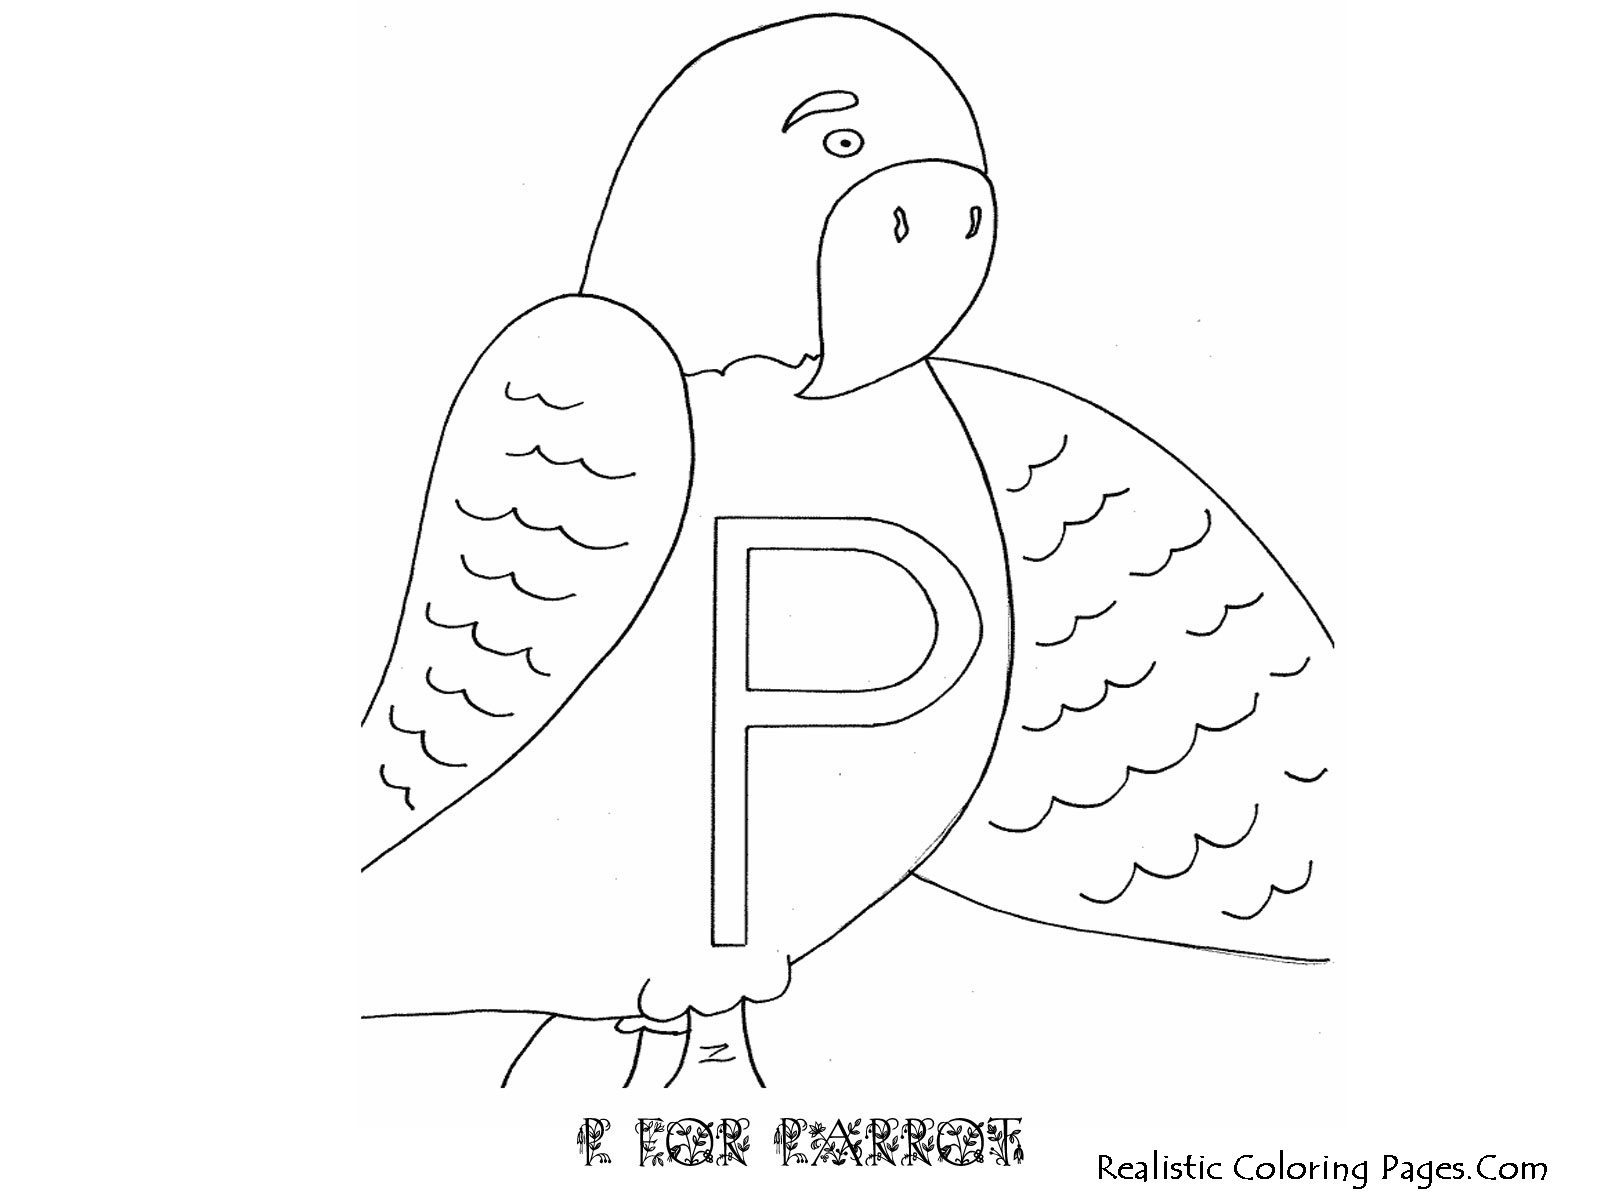 P Letters Alphabet Coloring Pages Realistic Coloring Pages